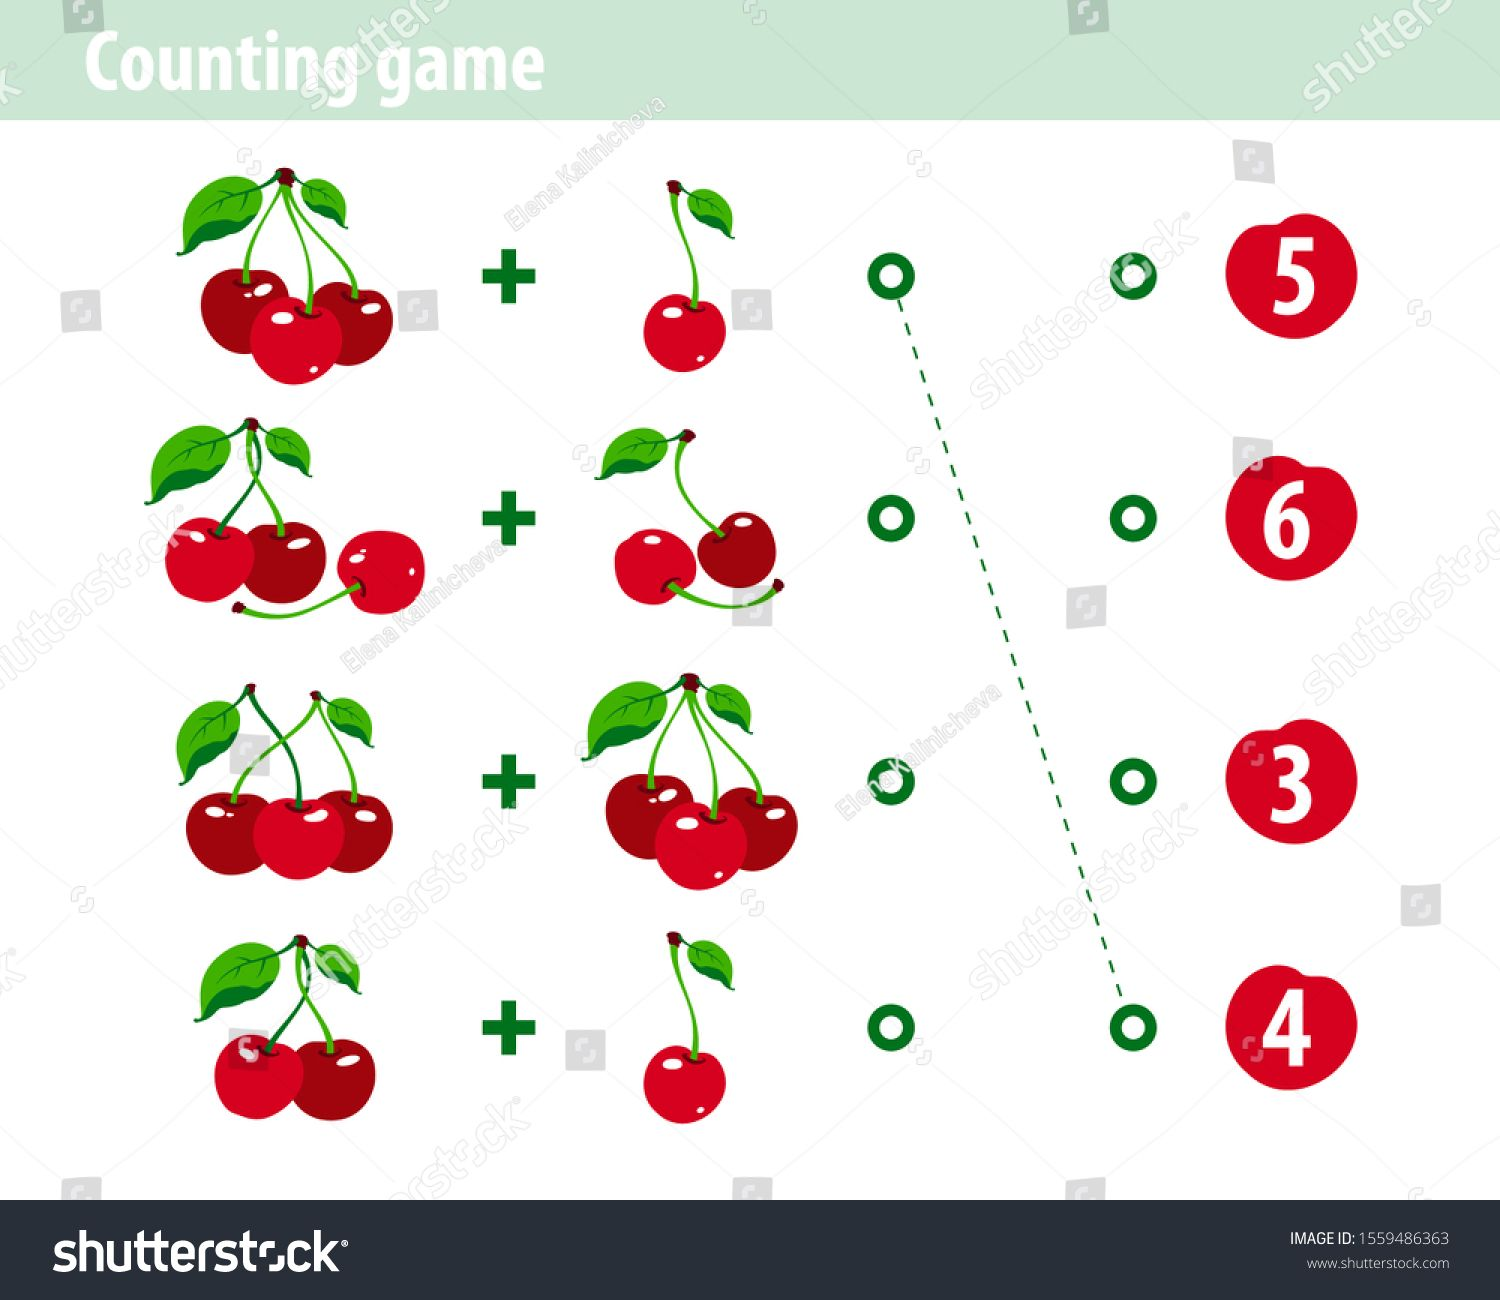 Counting Game For Children Worksheet Educational A